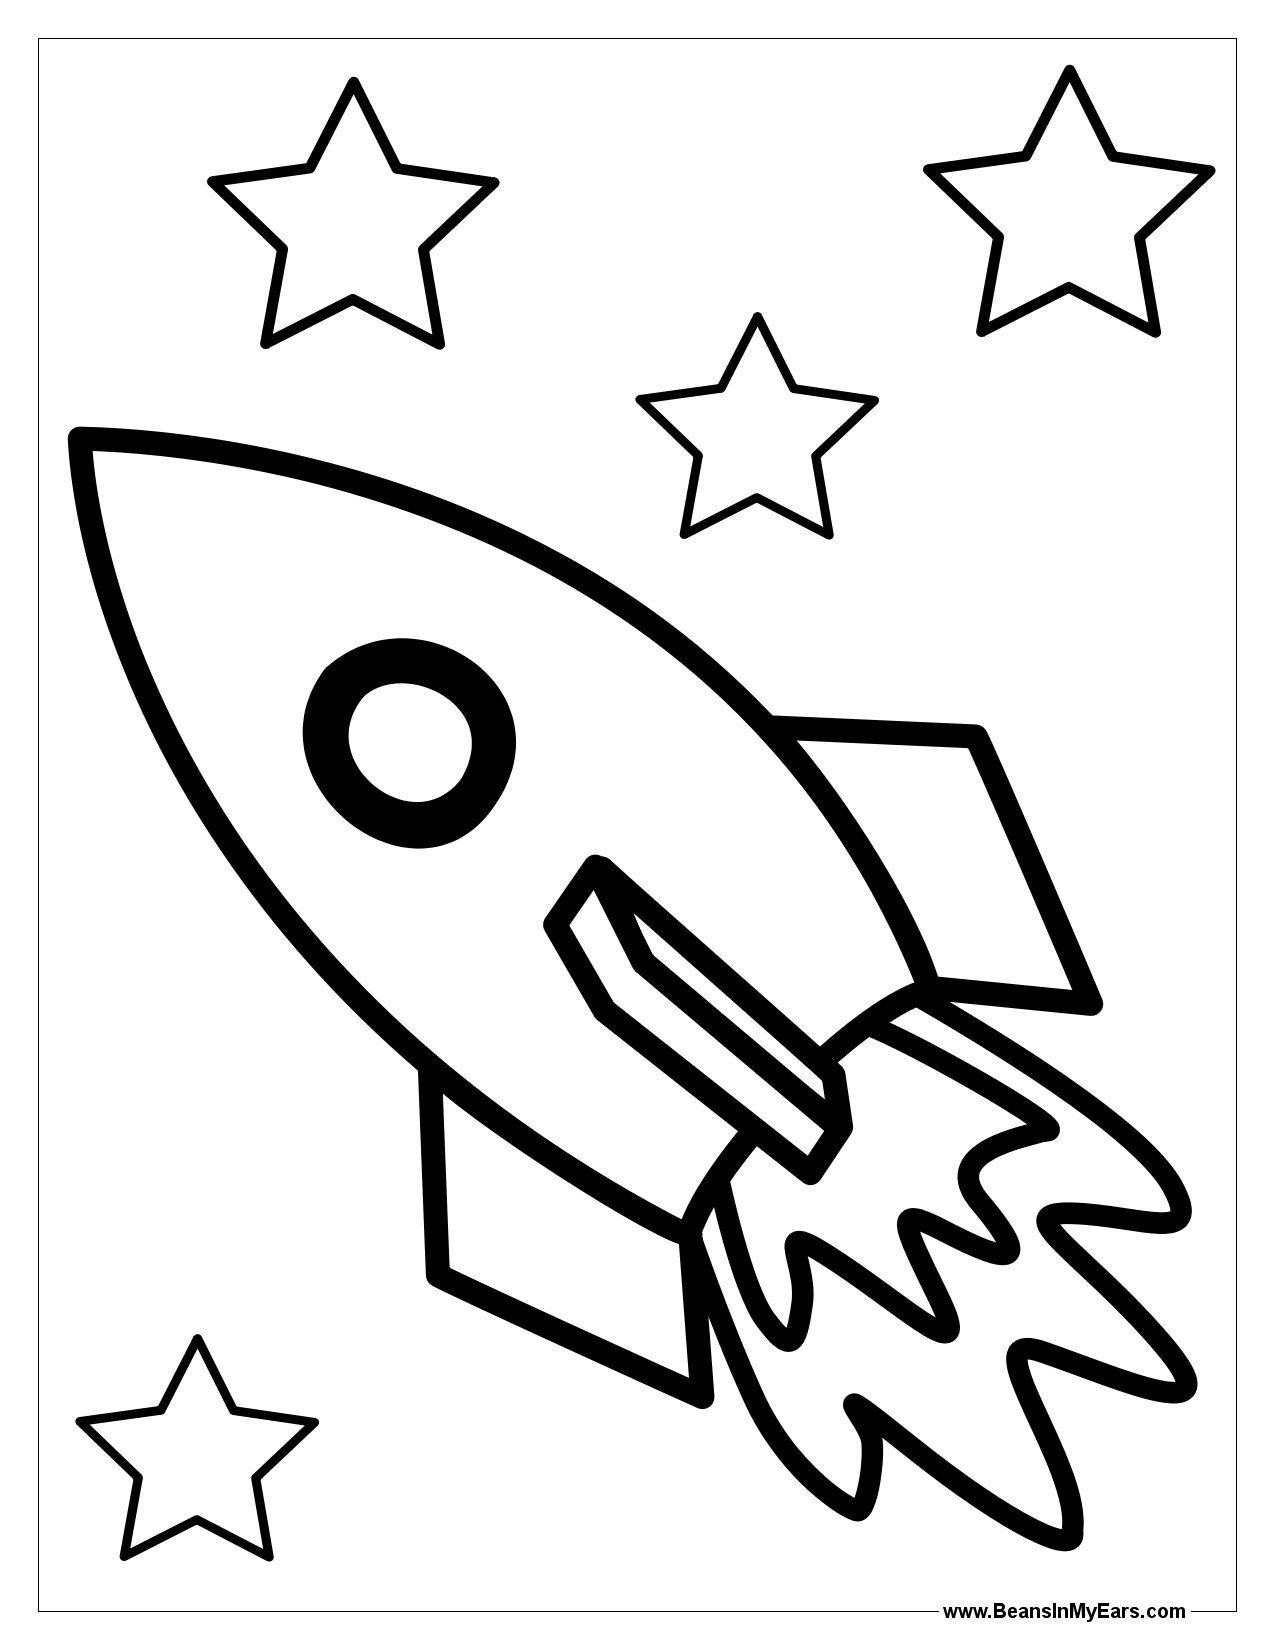 preschool rocket coloring pages rocket coloring pages for kindergarten and preschool rocket preschool pages coloring